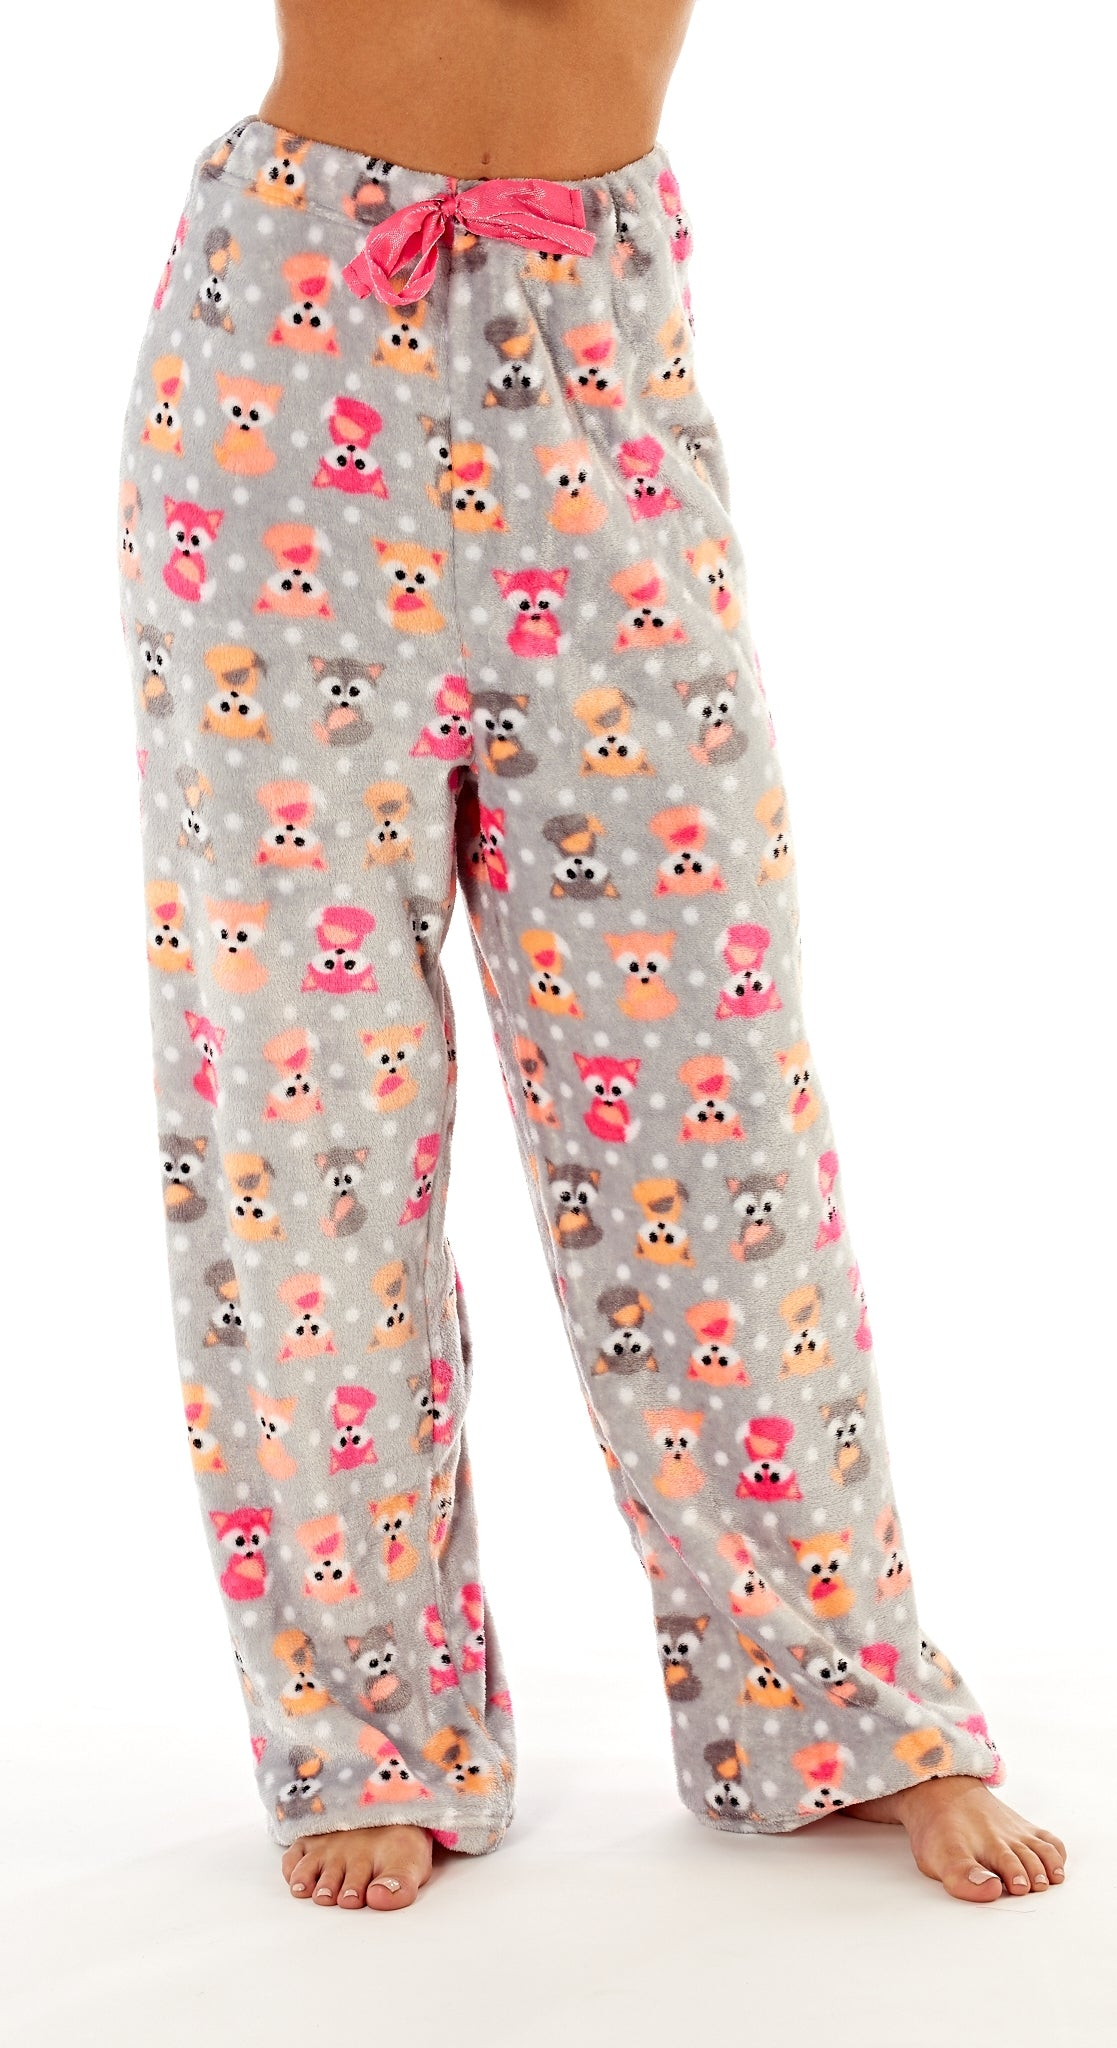 Octave Ladies Loungewear Pants Pyjama Bottoms - Fox